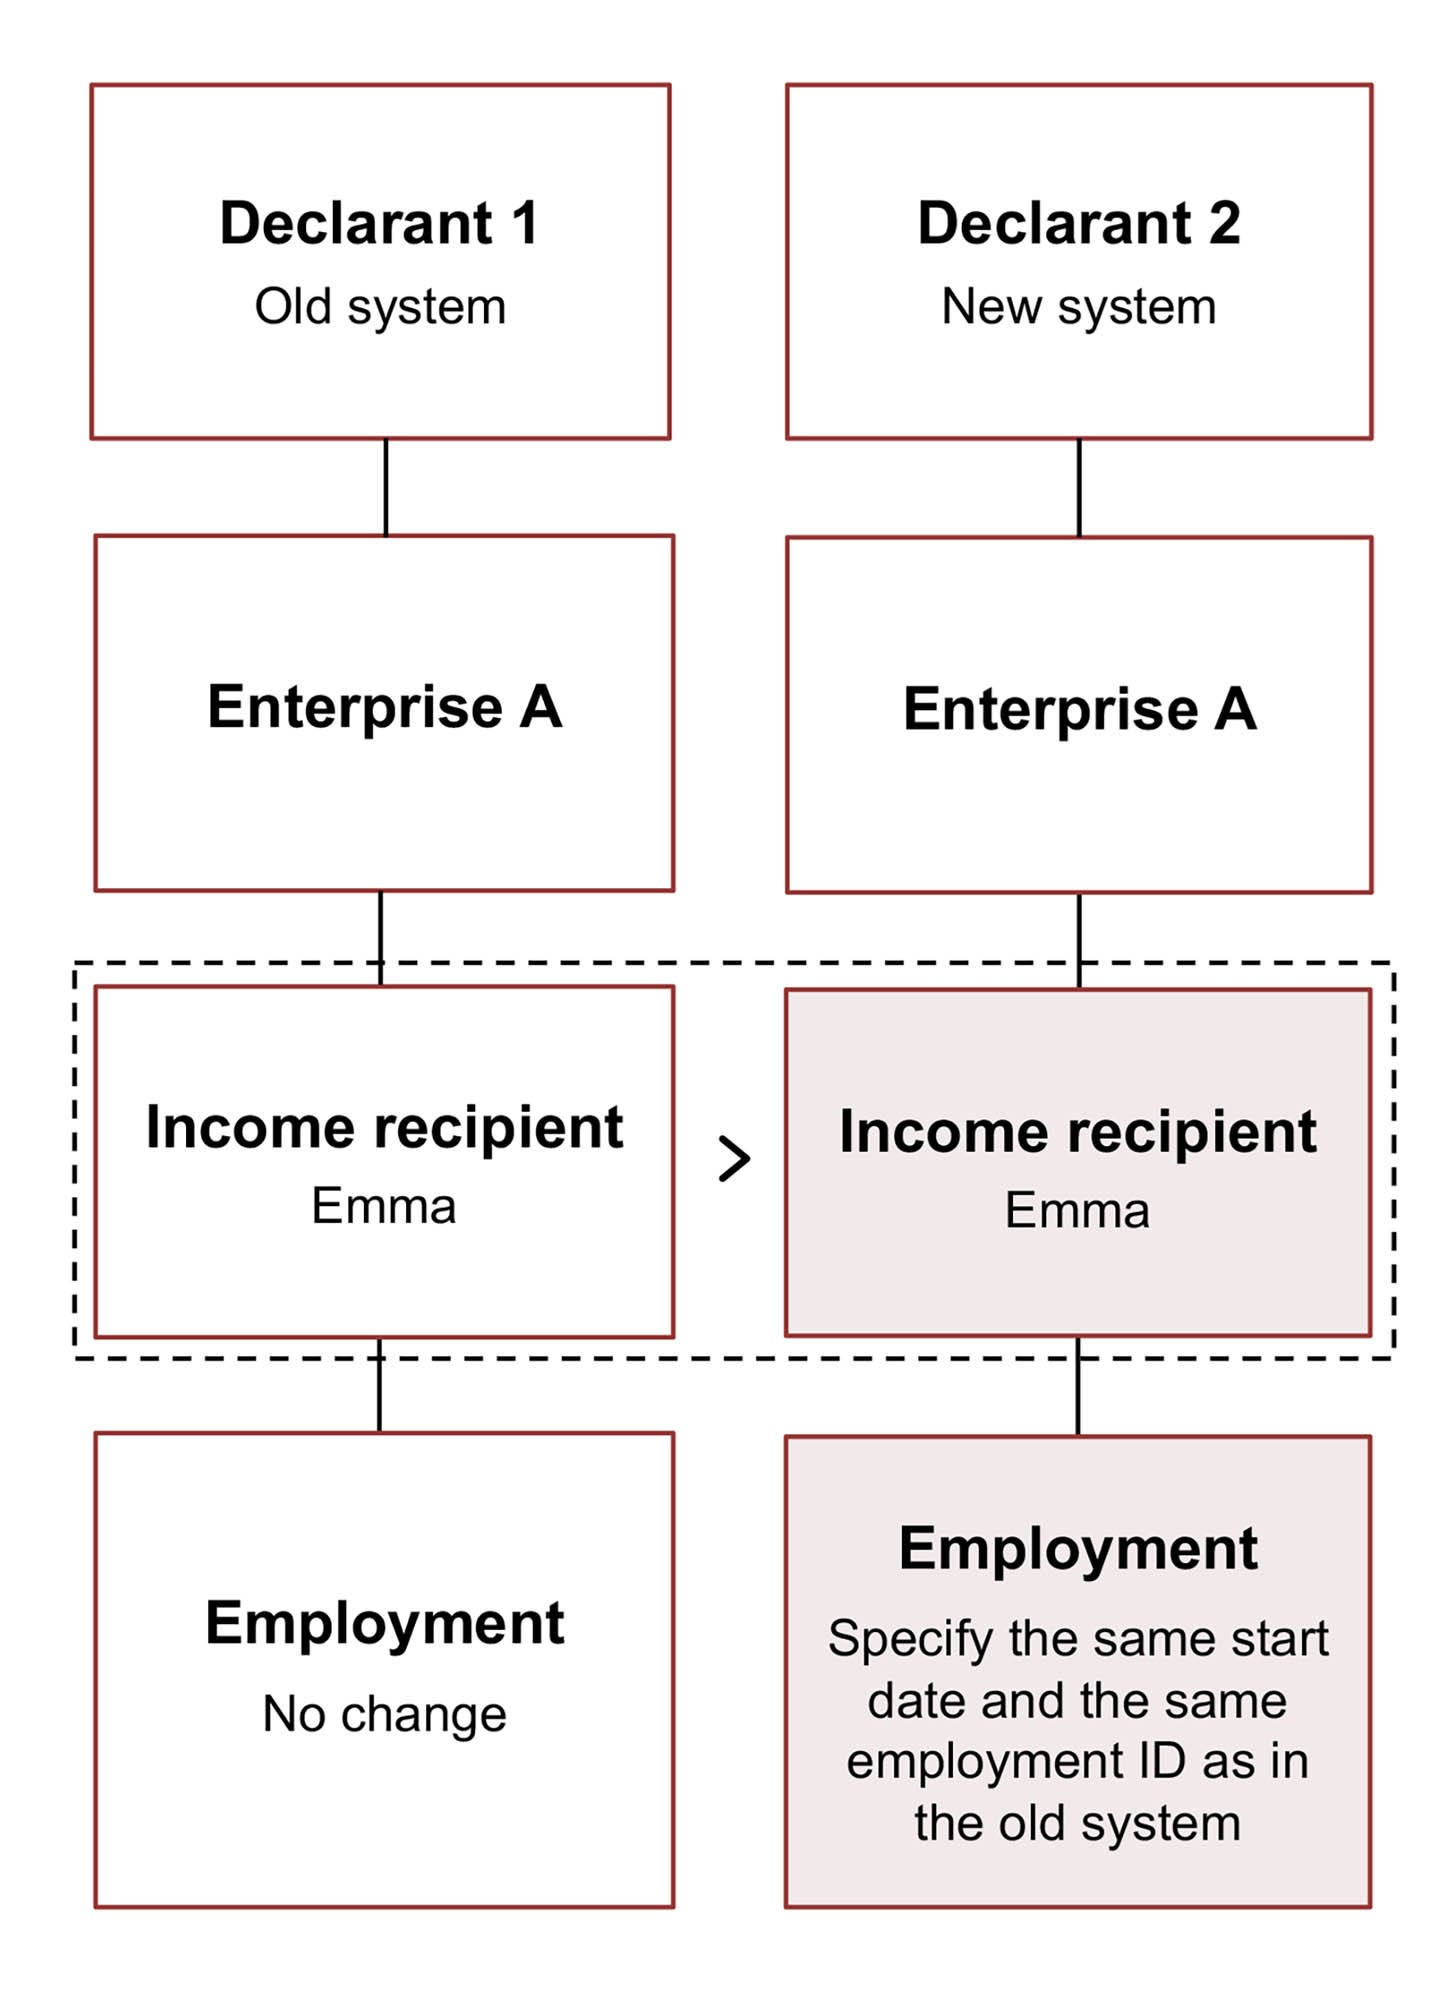 Diagram. No change in Emma's employment information in the old system. In the new system, same start date and employment ID for Emma as in the old system. The text in the article explains this in more detail.